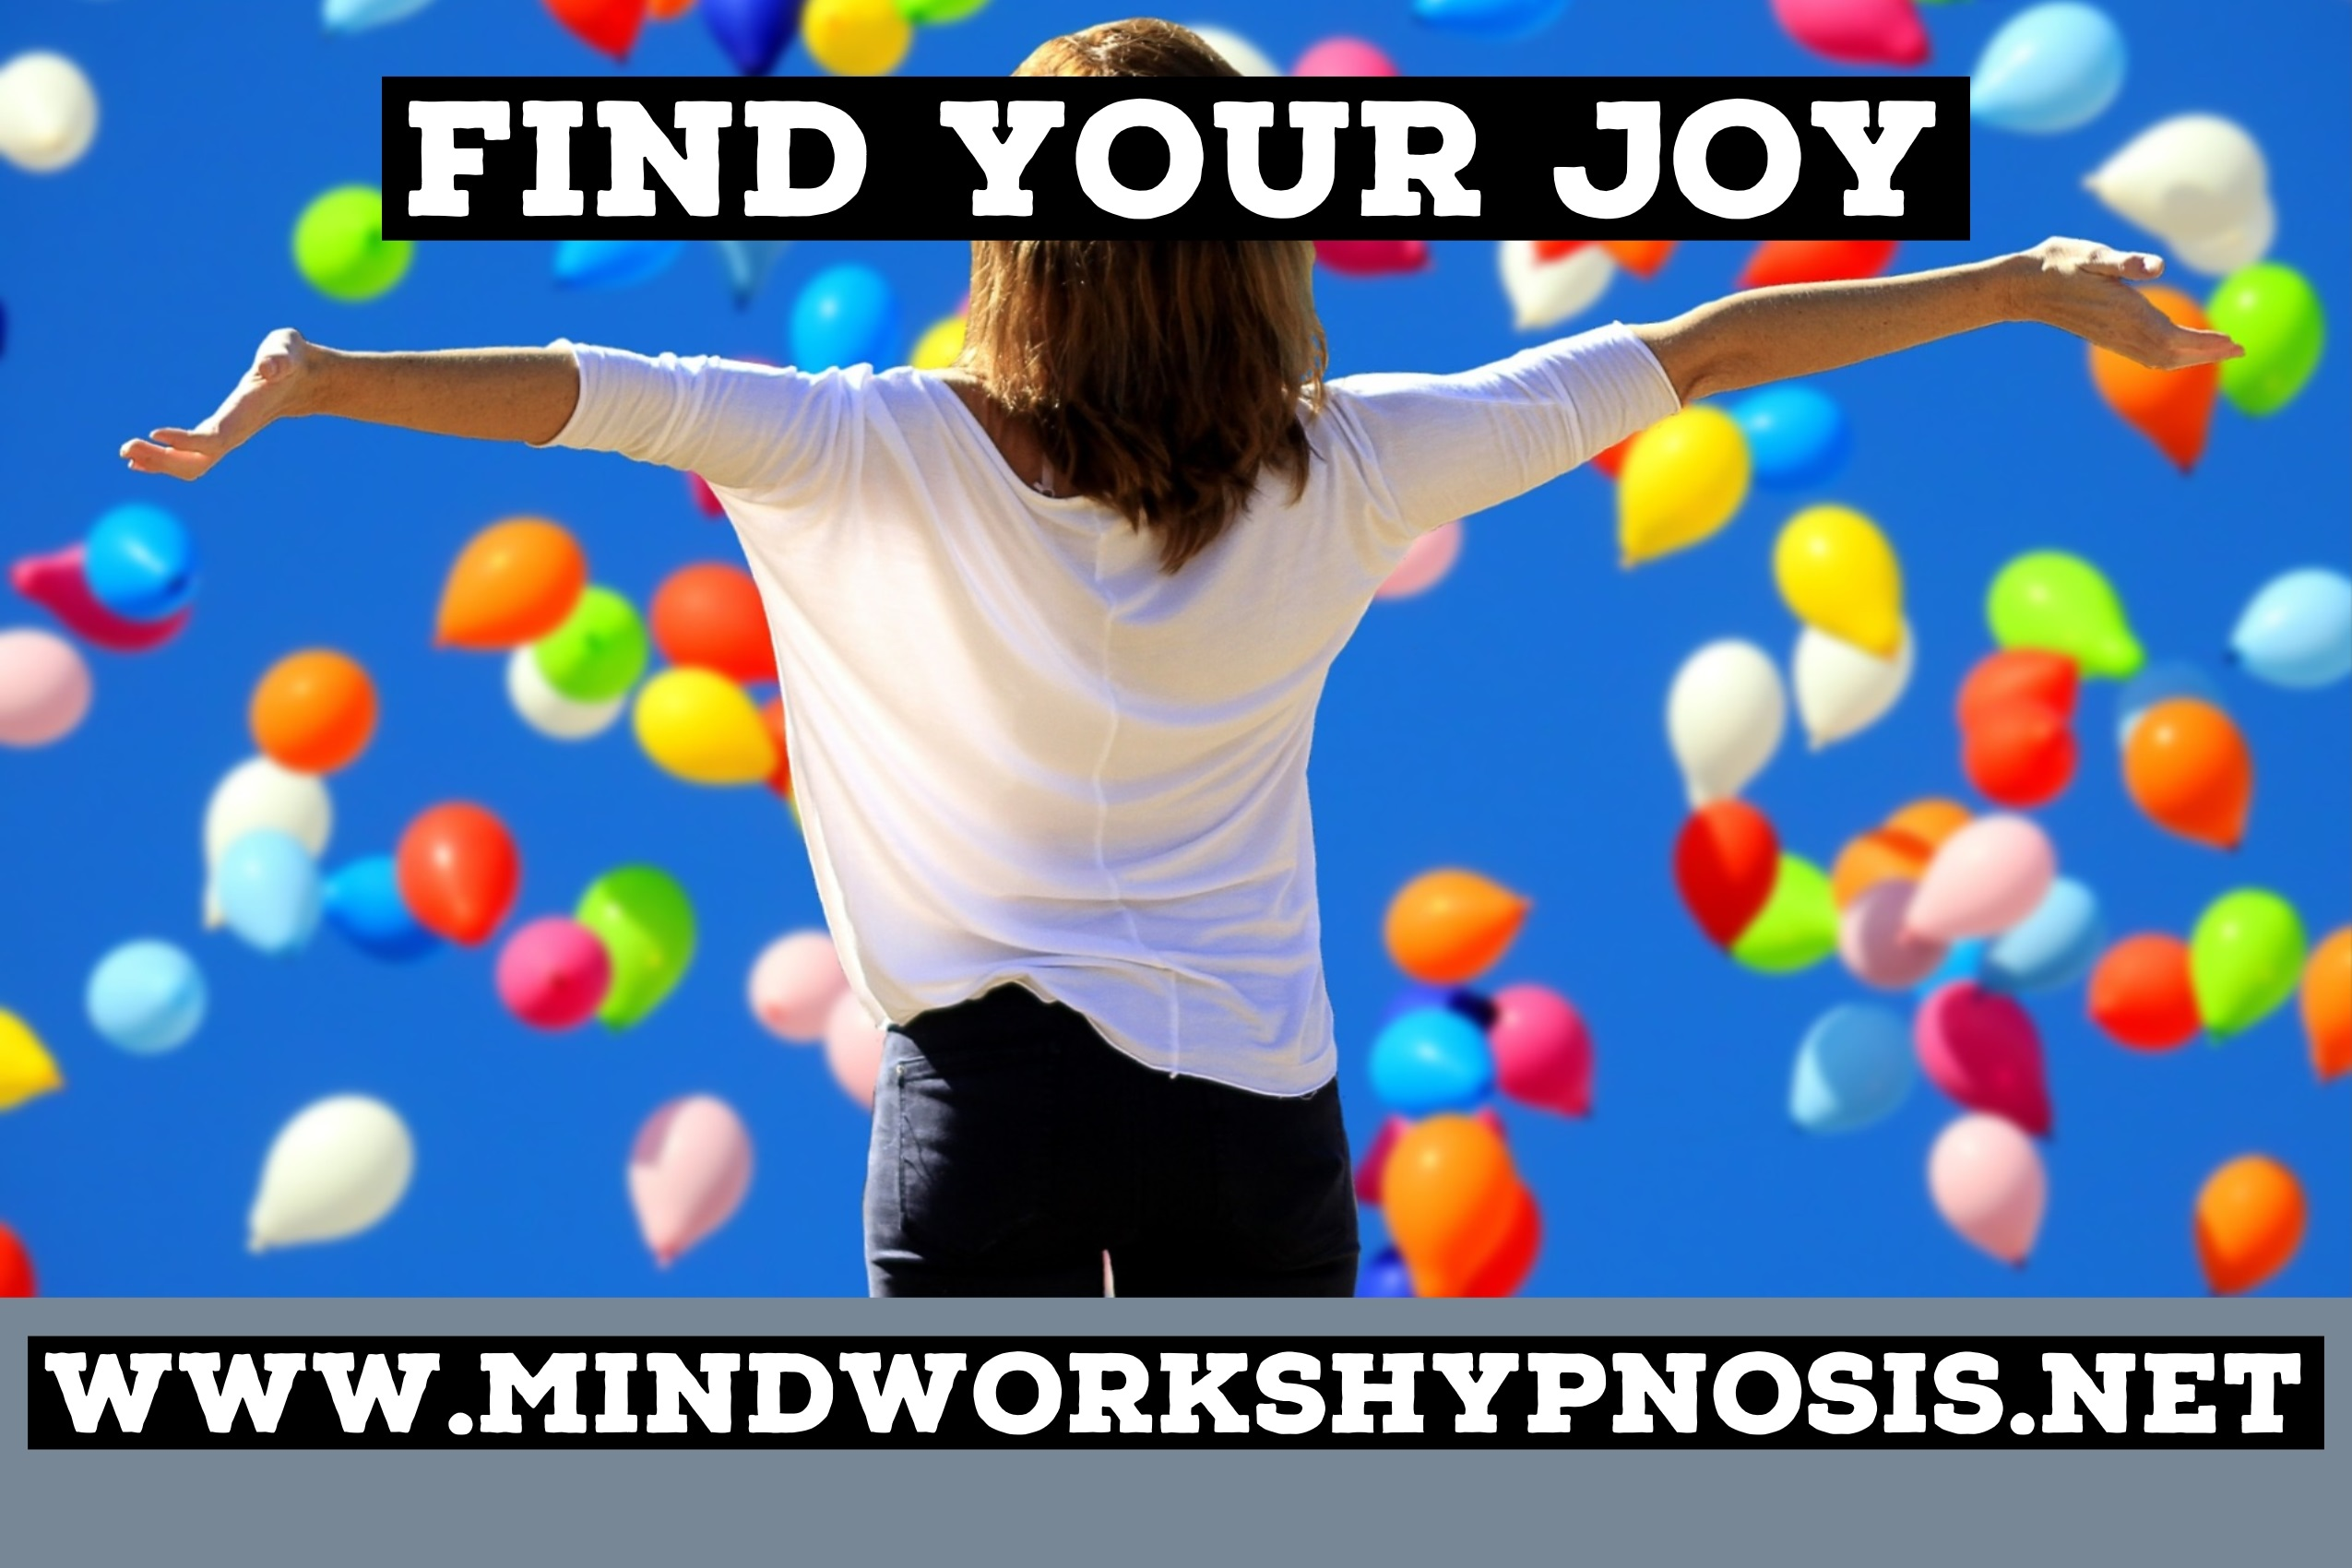 Find your Joy with Mindworks Hypnosis & NLP.